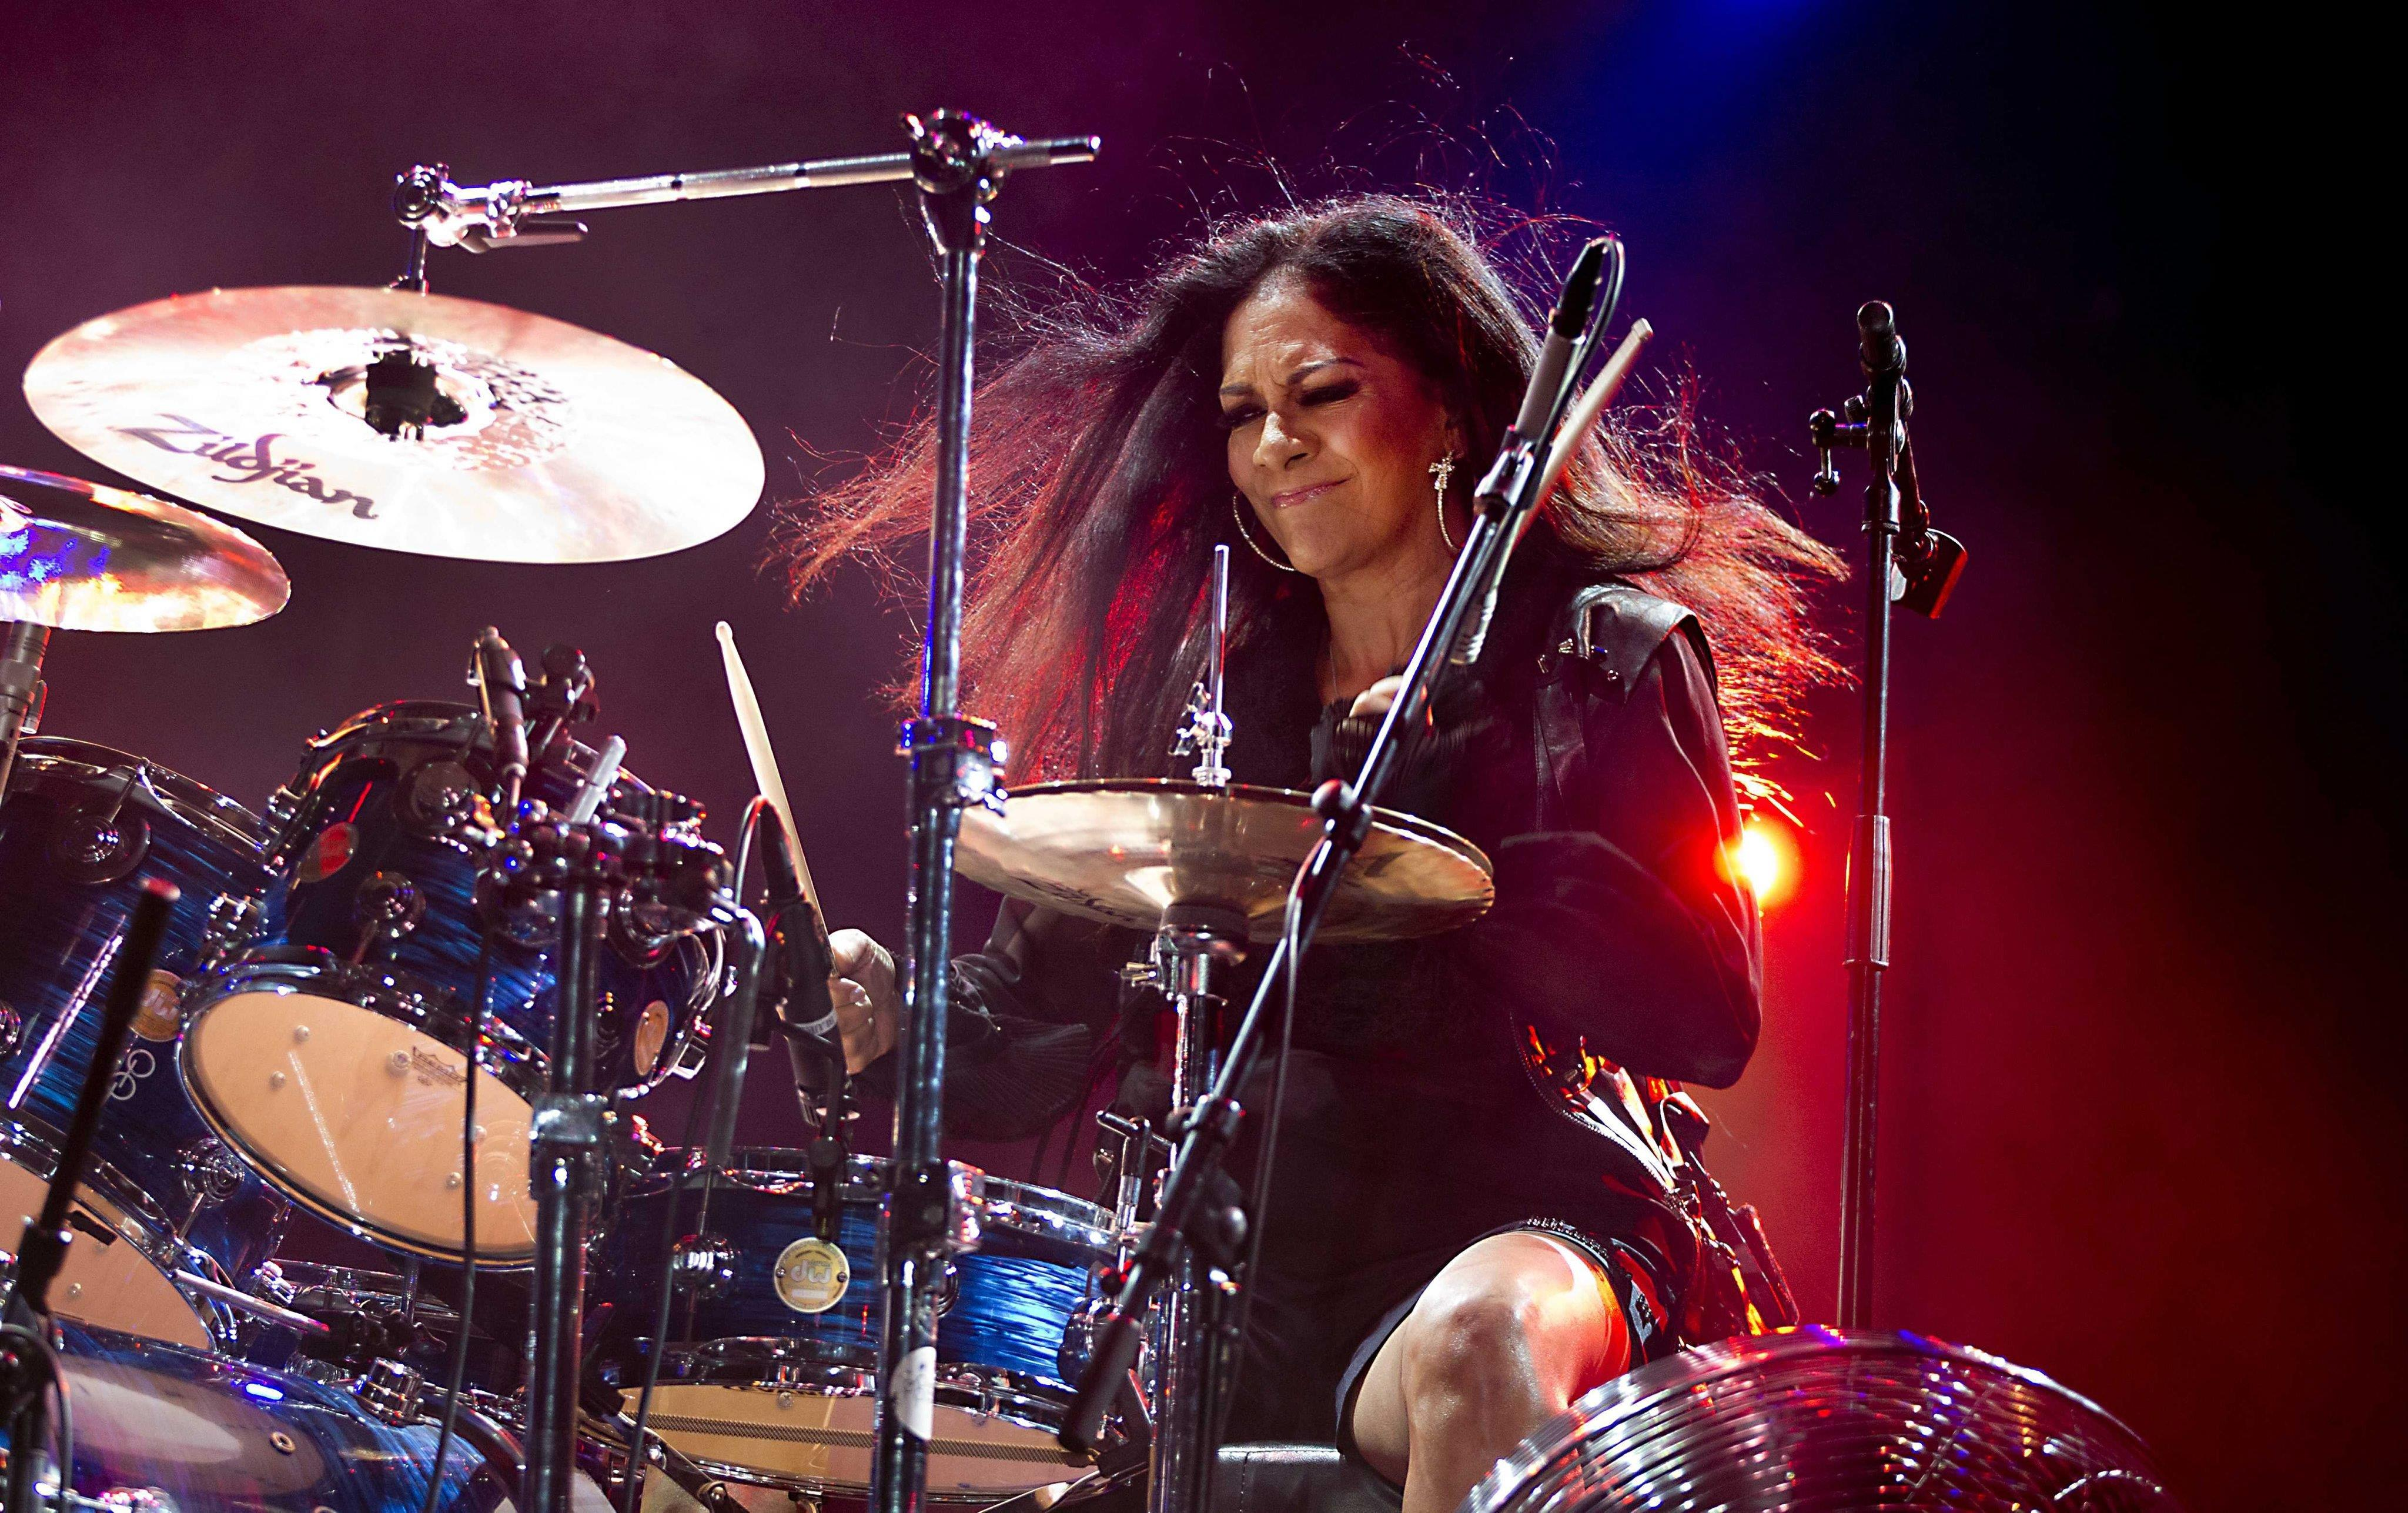 SHEILA E. DOCUMENTARY, CURRENTLY IN PRODUCTION